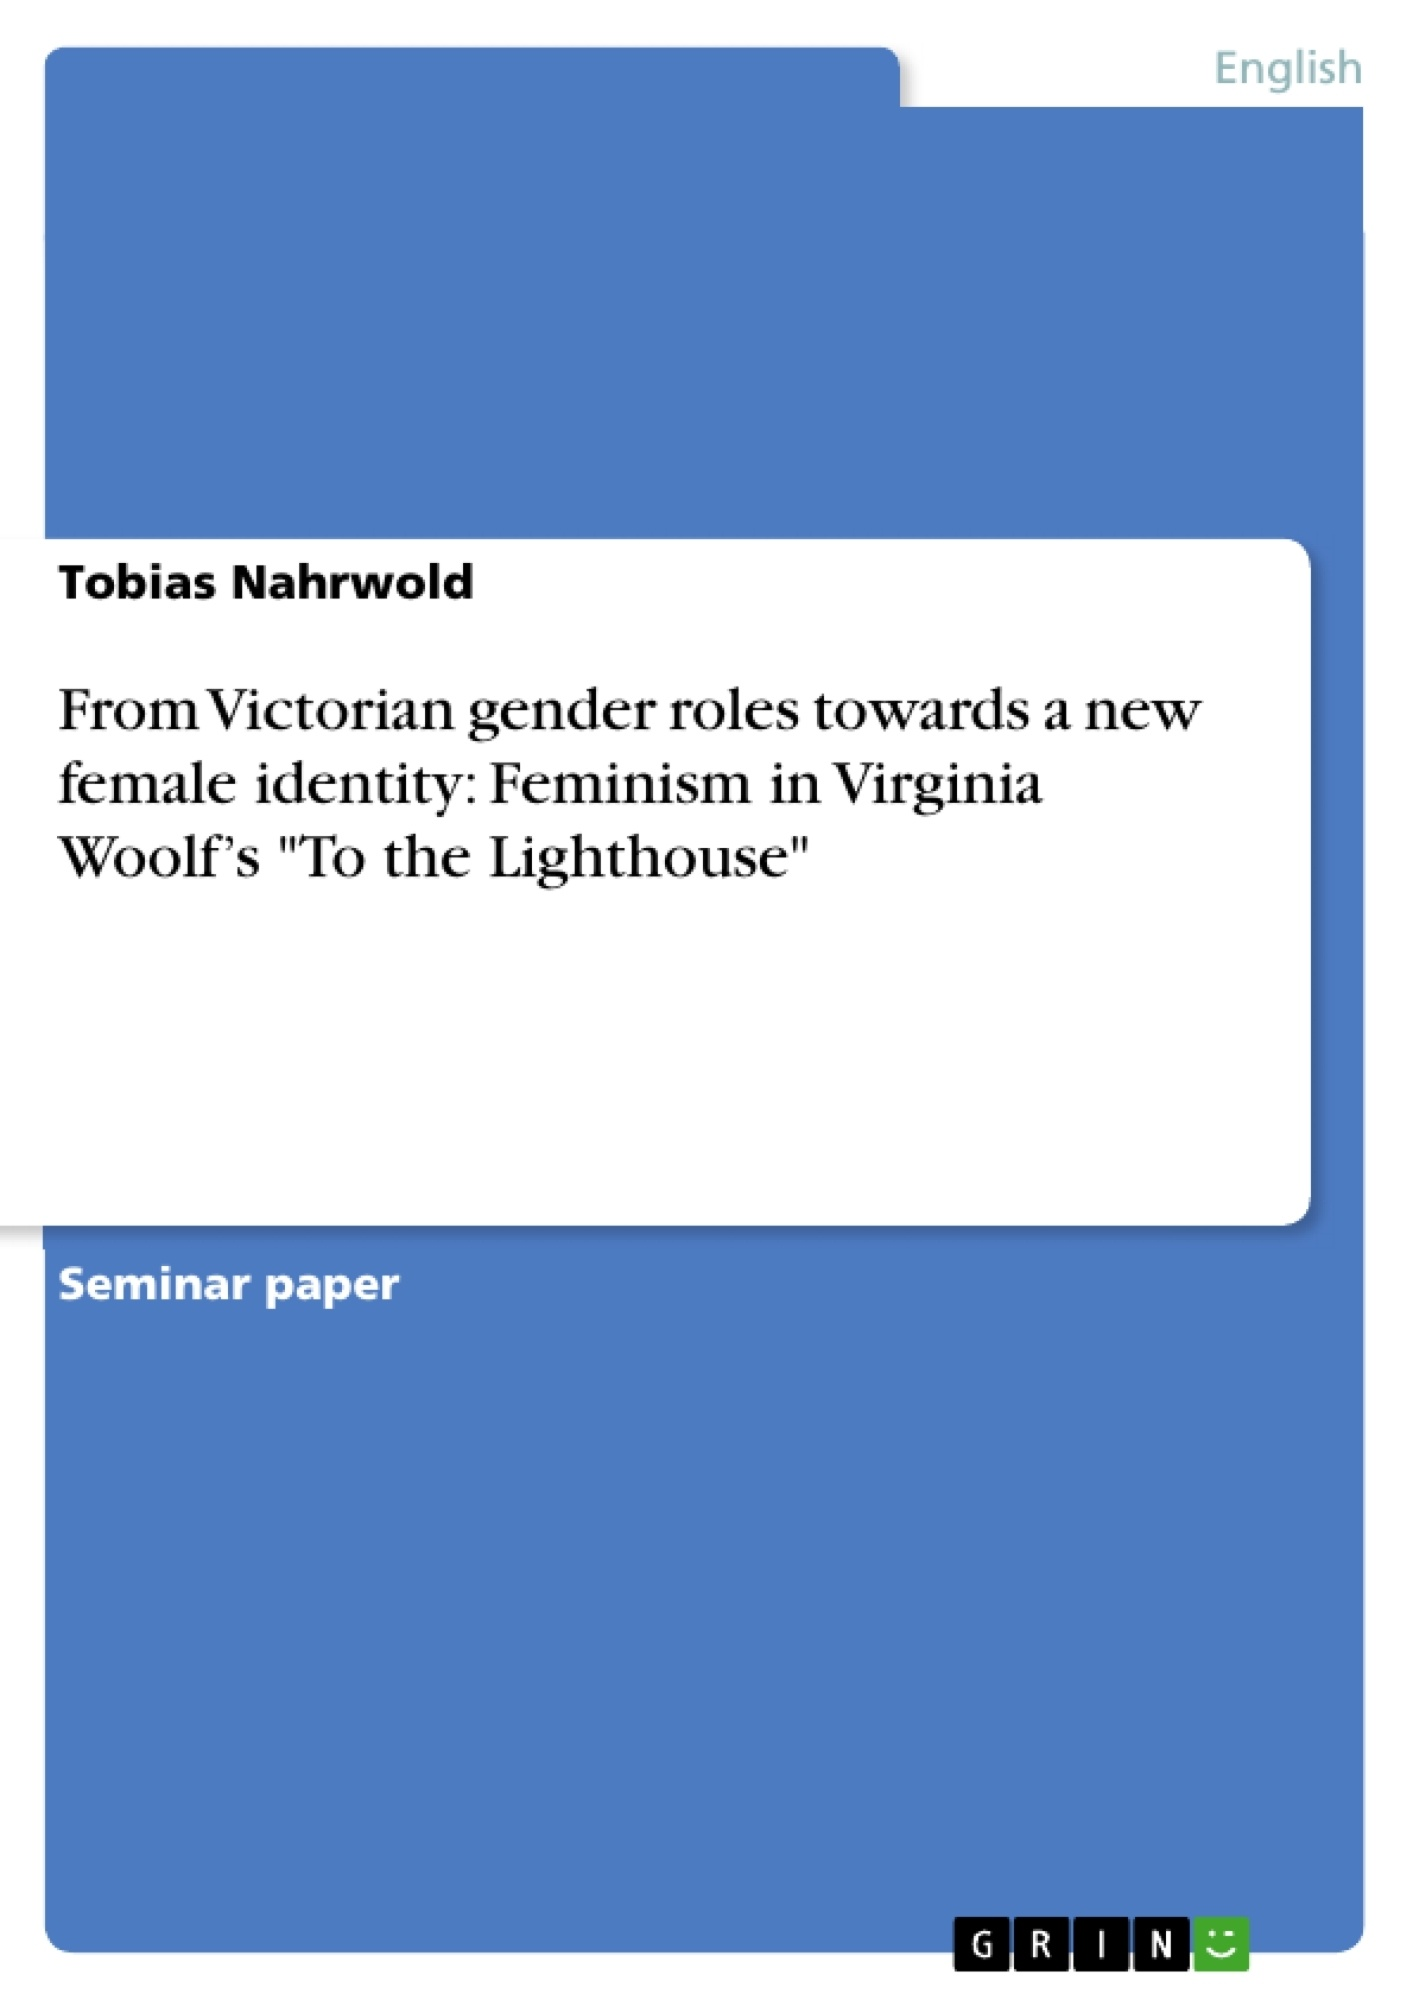 """Title: From Victorian gender roles towards a new female identity: Feminism in Virginia Woolf's """"To the Lighthouse"""""""